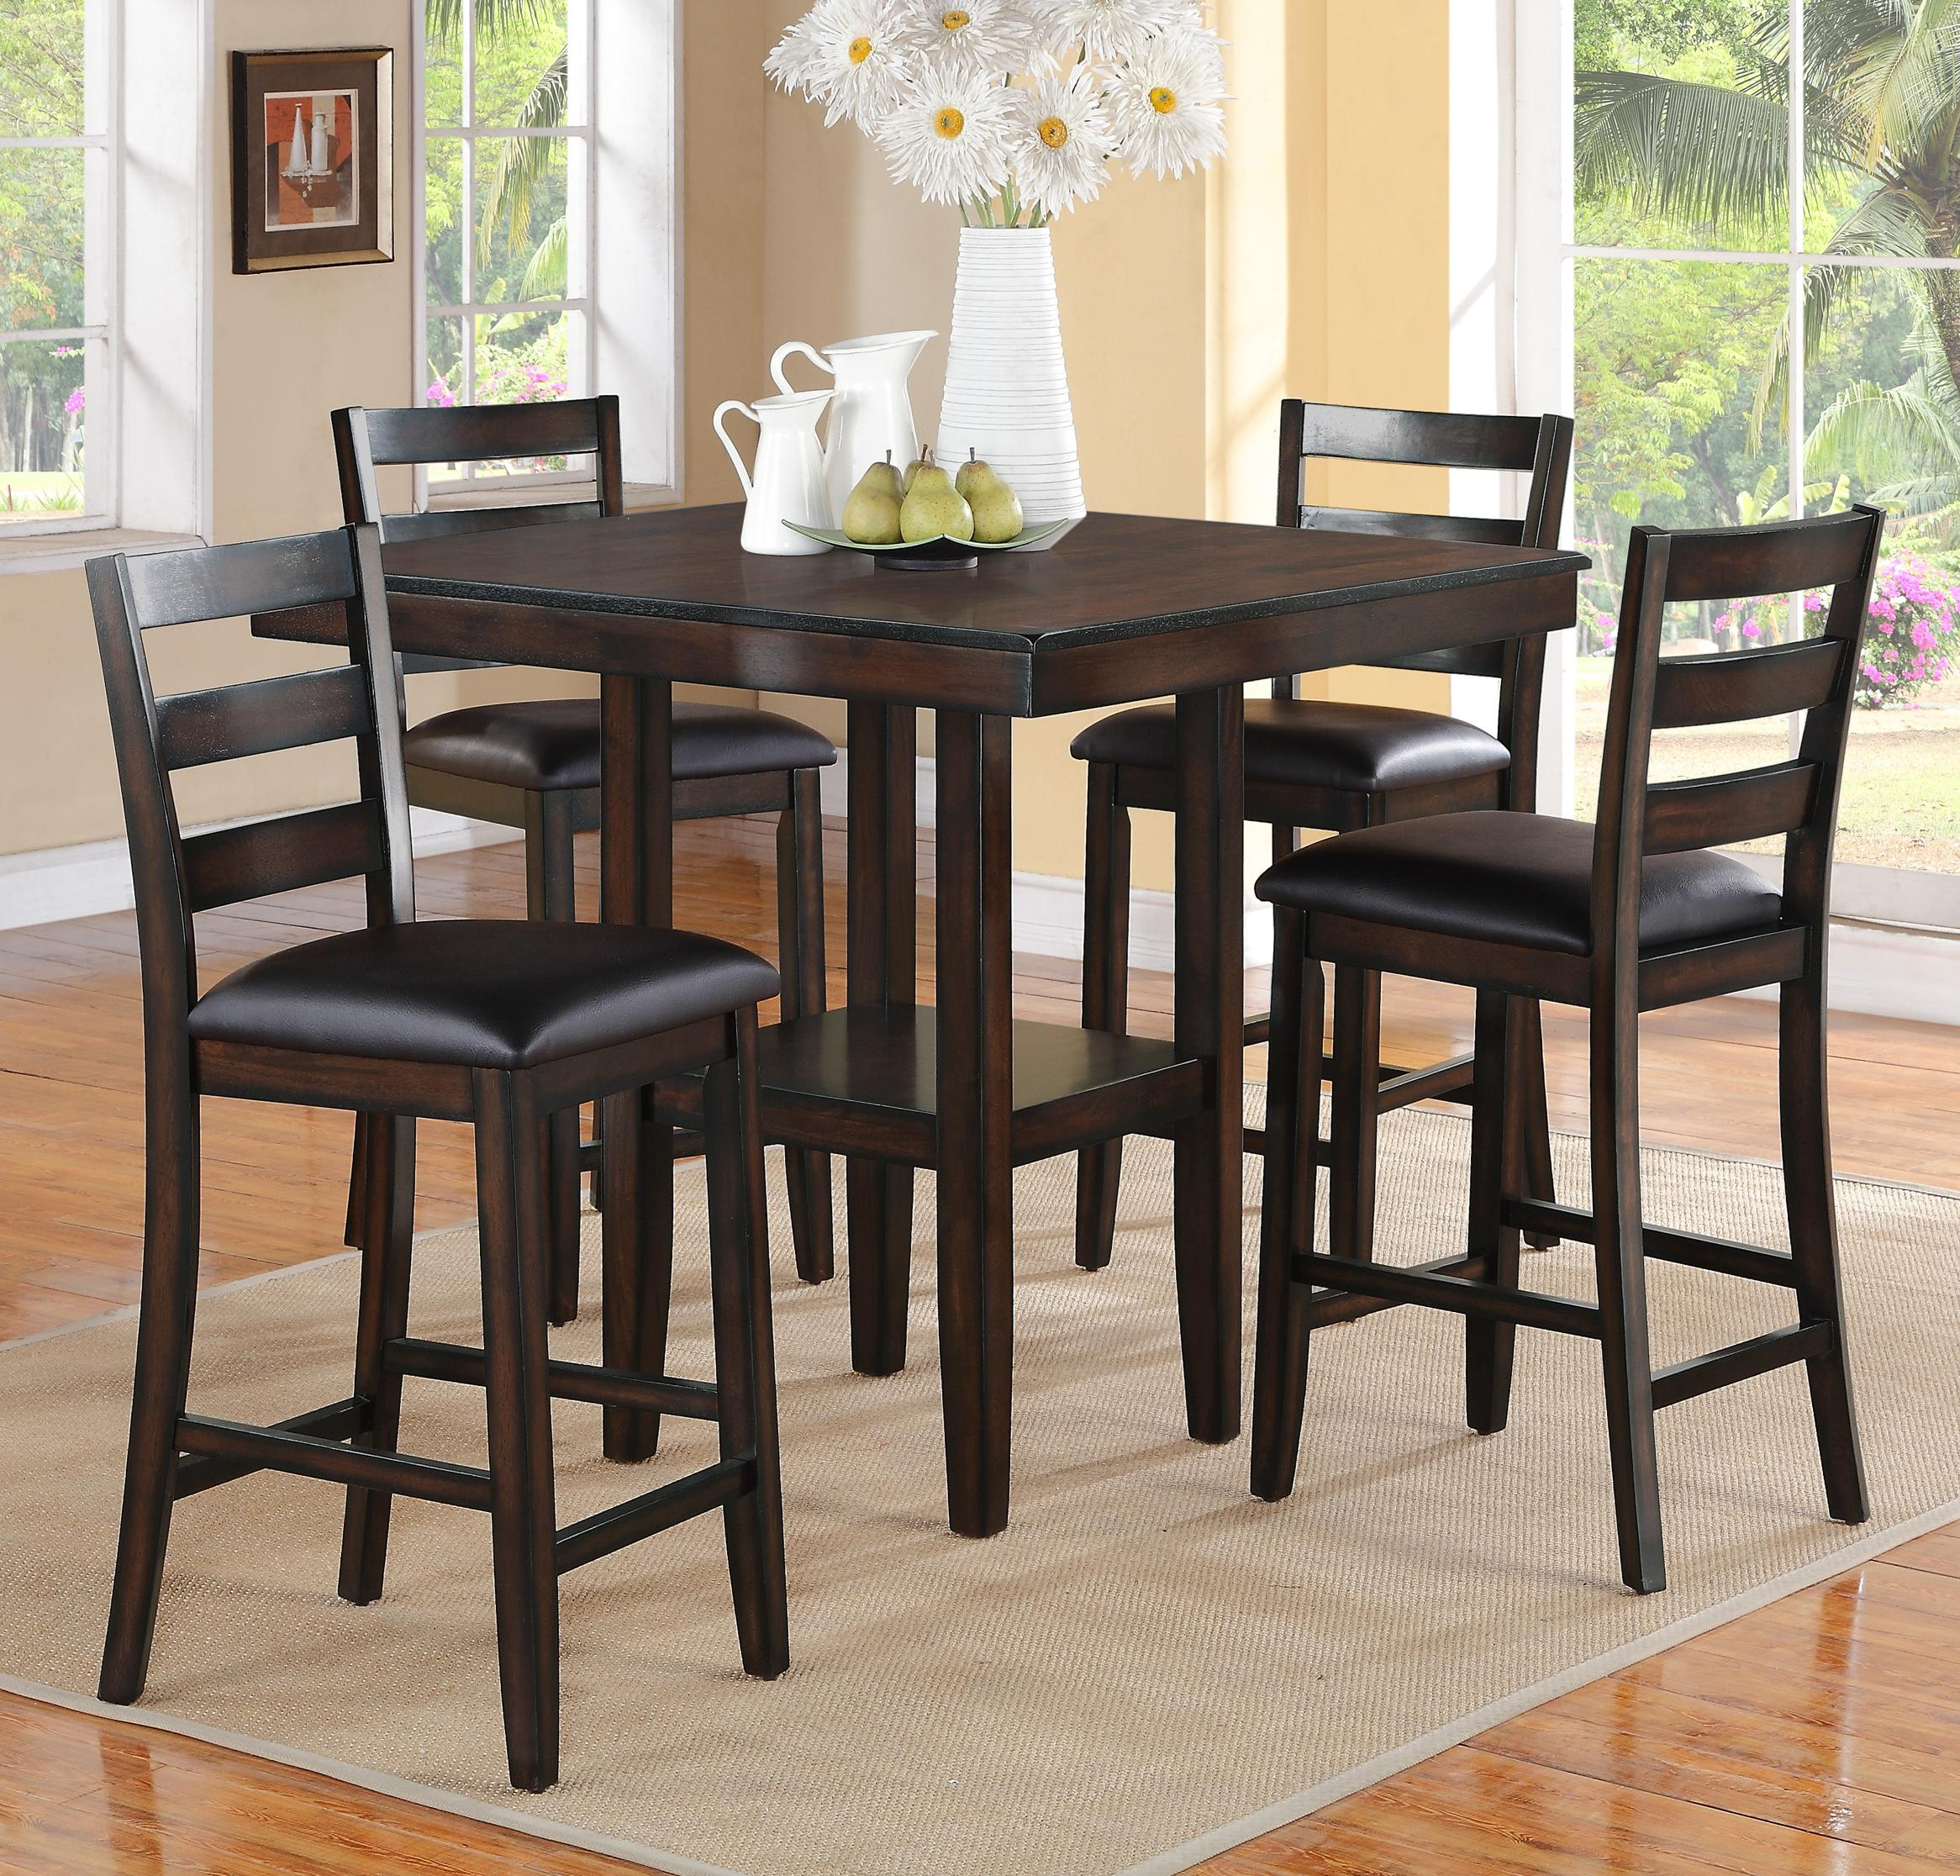 Crown Mark Tahoe 5 Piece Counter Height Table And Chairs Set   Item Number:  2630Set